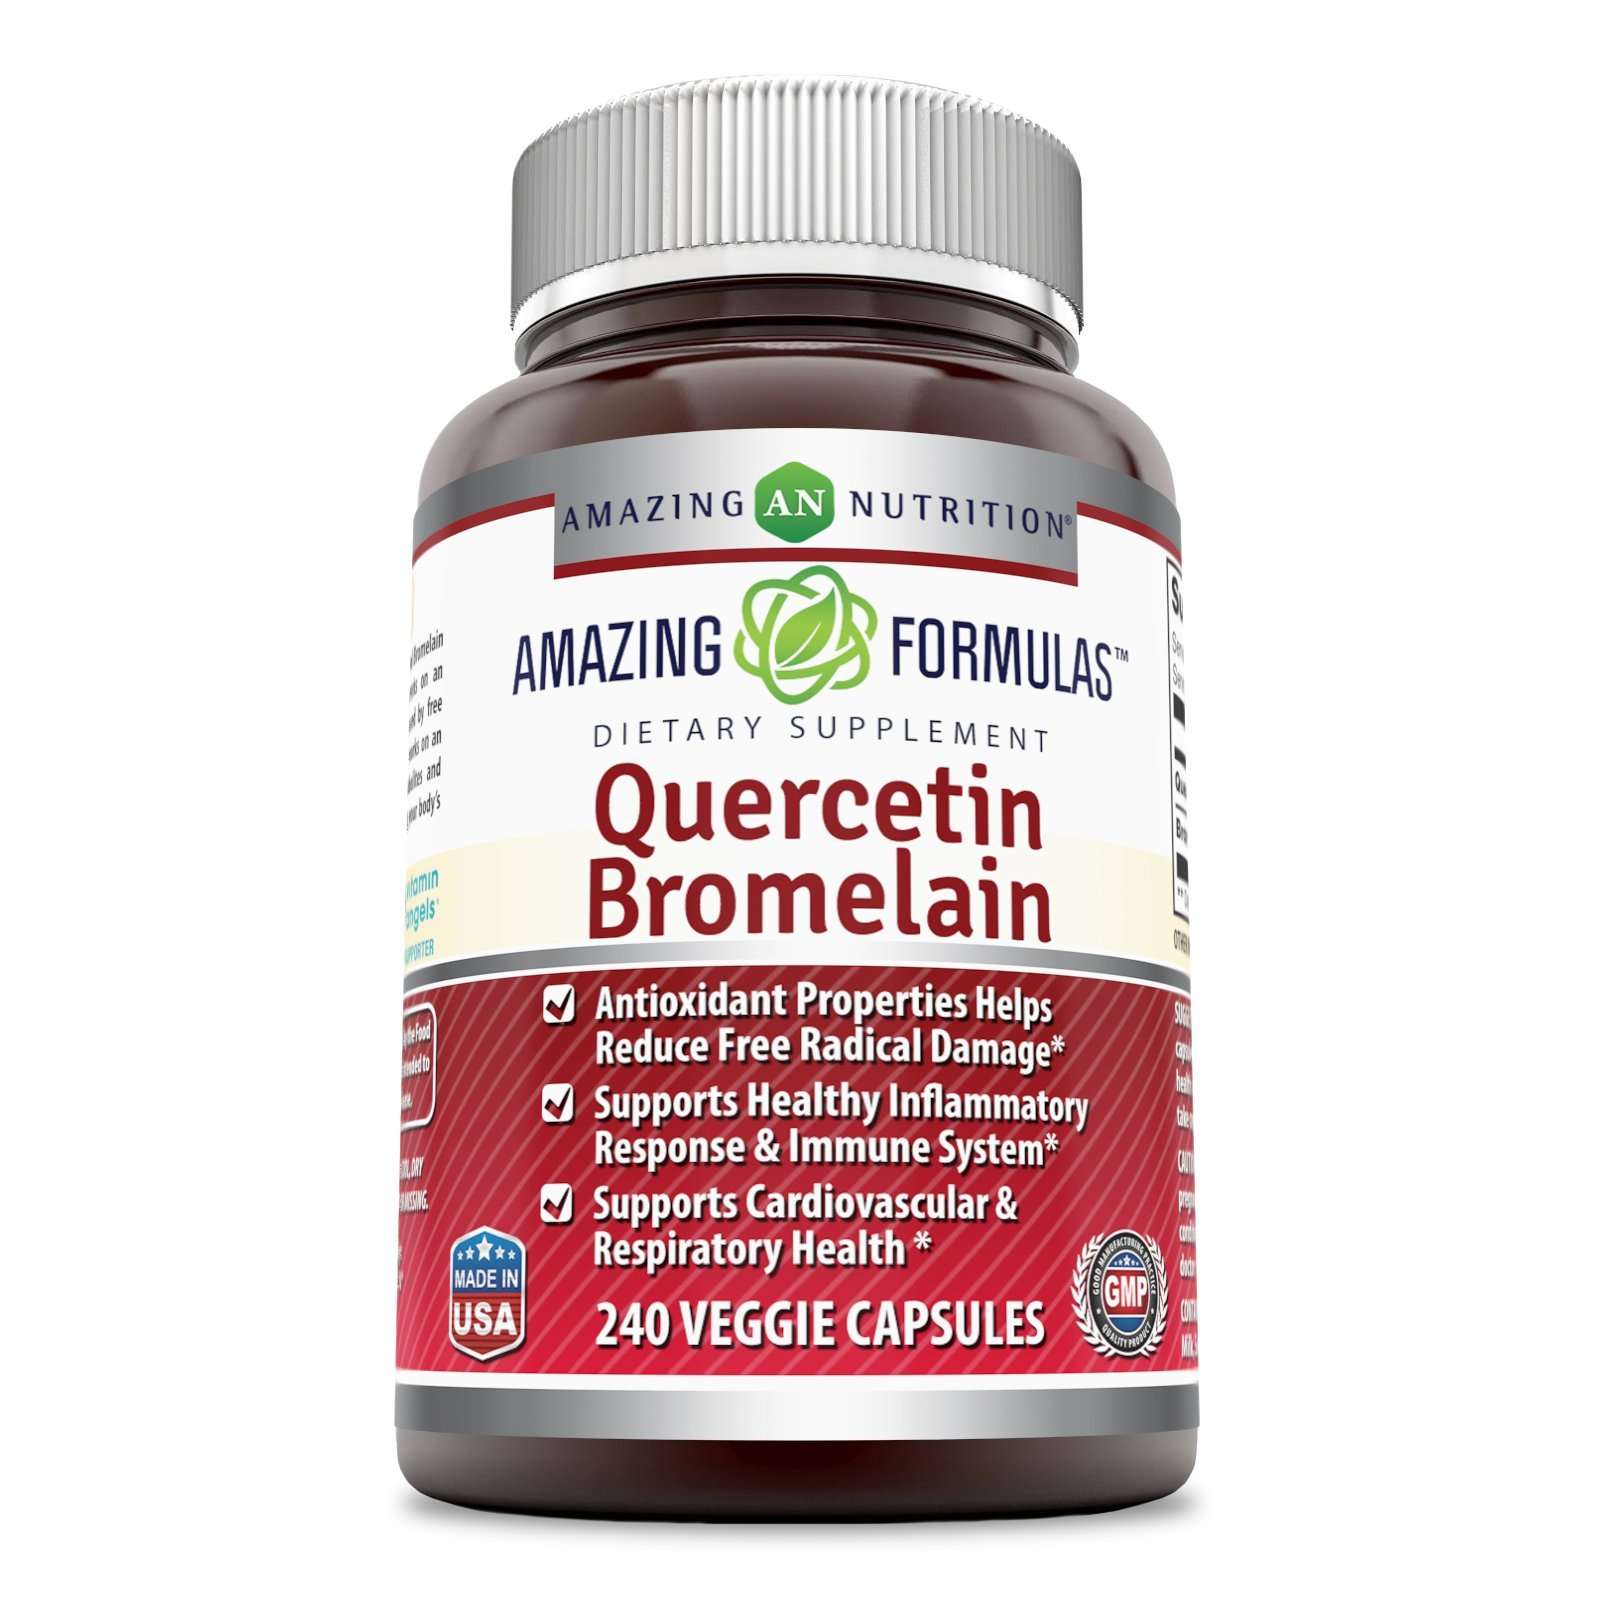 Amazing Nutrition- Quercetin 800 Mg with Bromelain 165 Mg, 240 Vcaps: A Potent Team Providing Amazing Health Benefits.